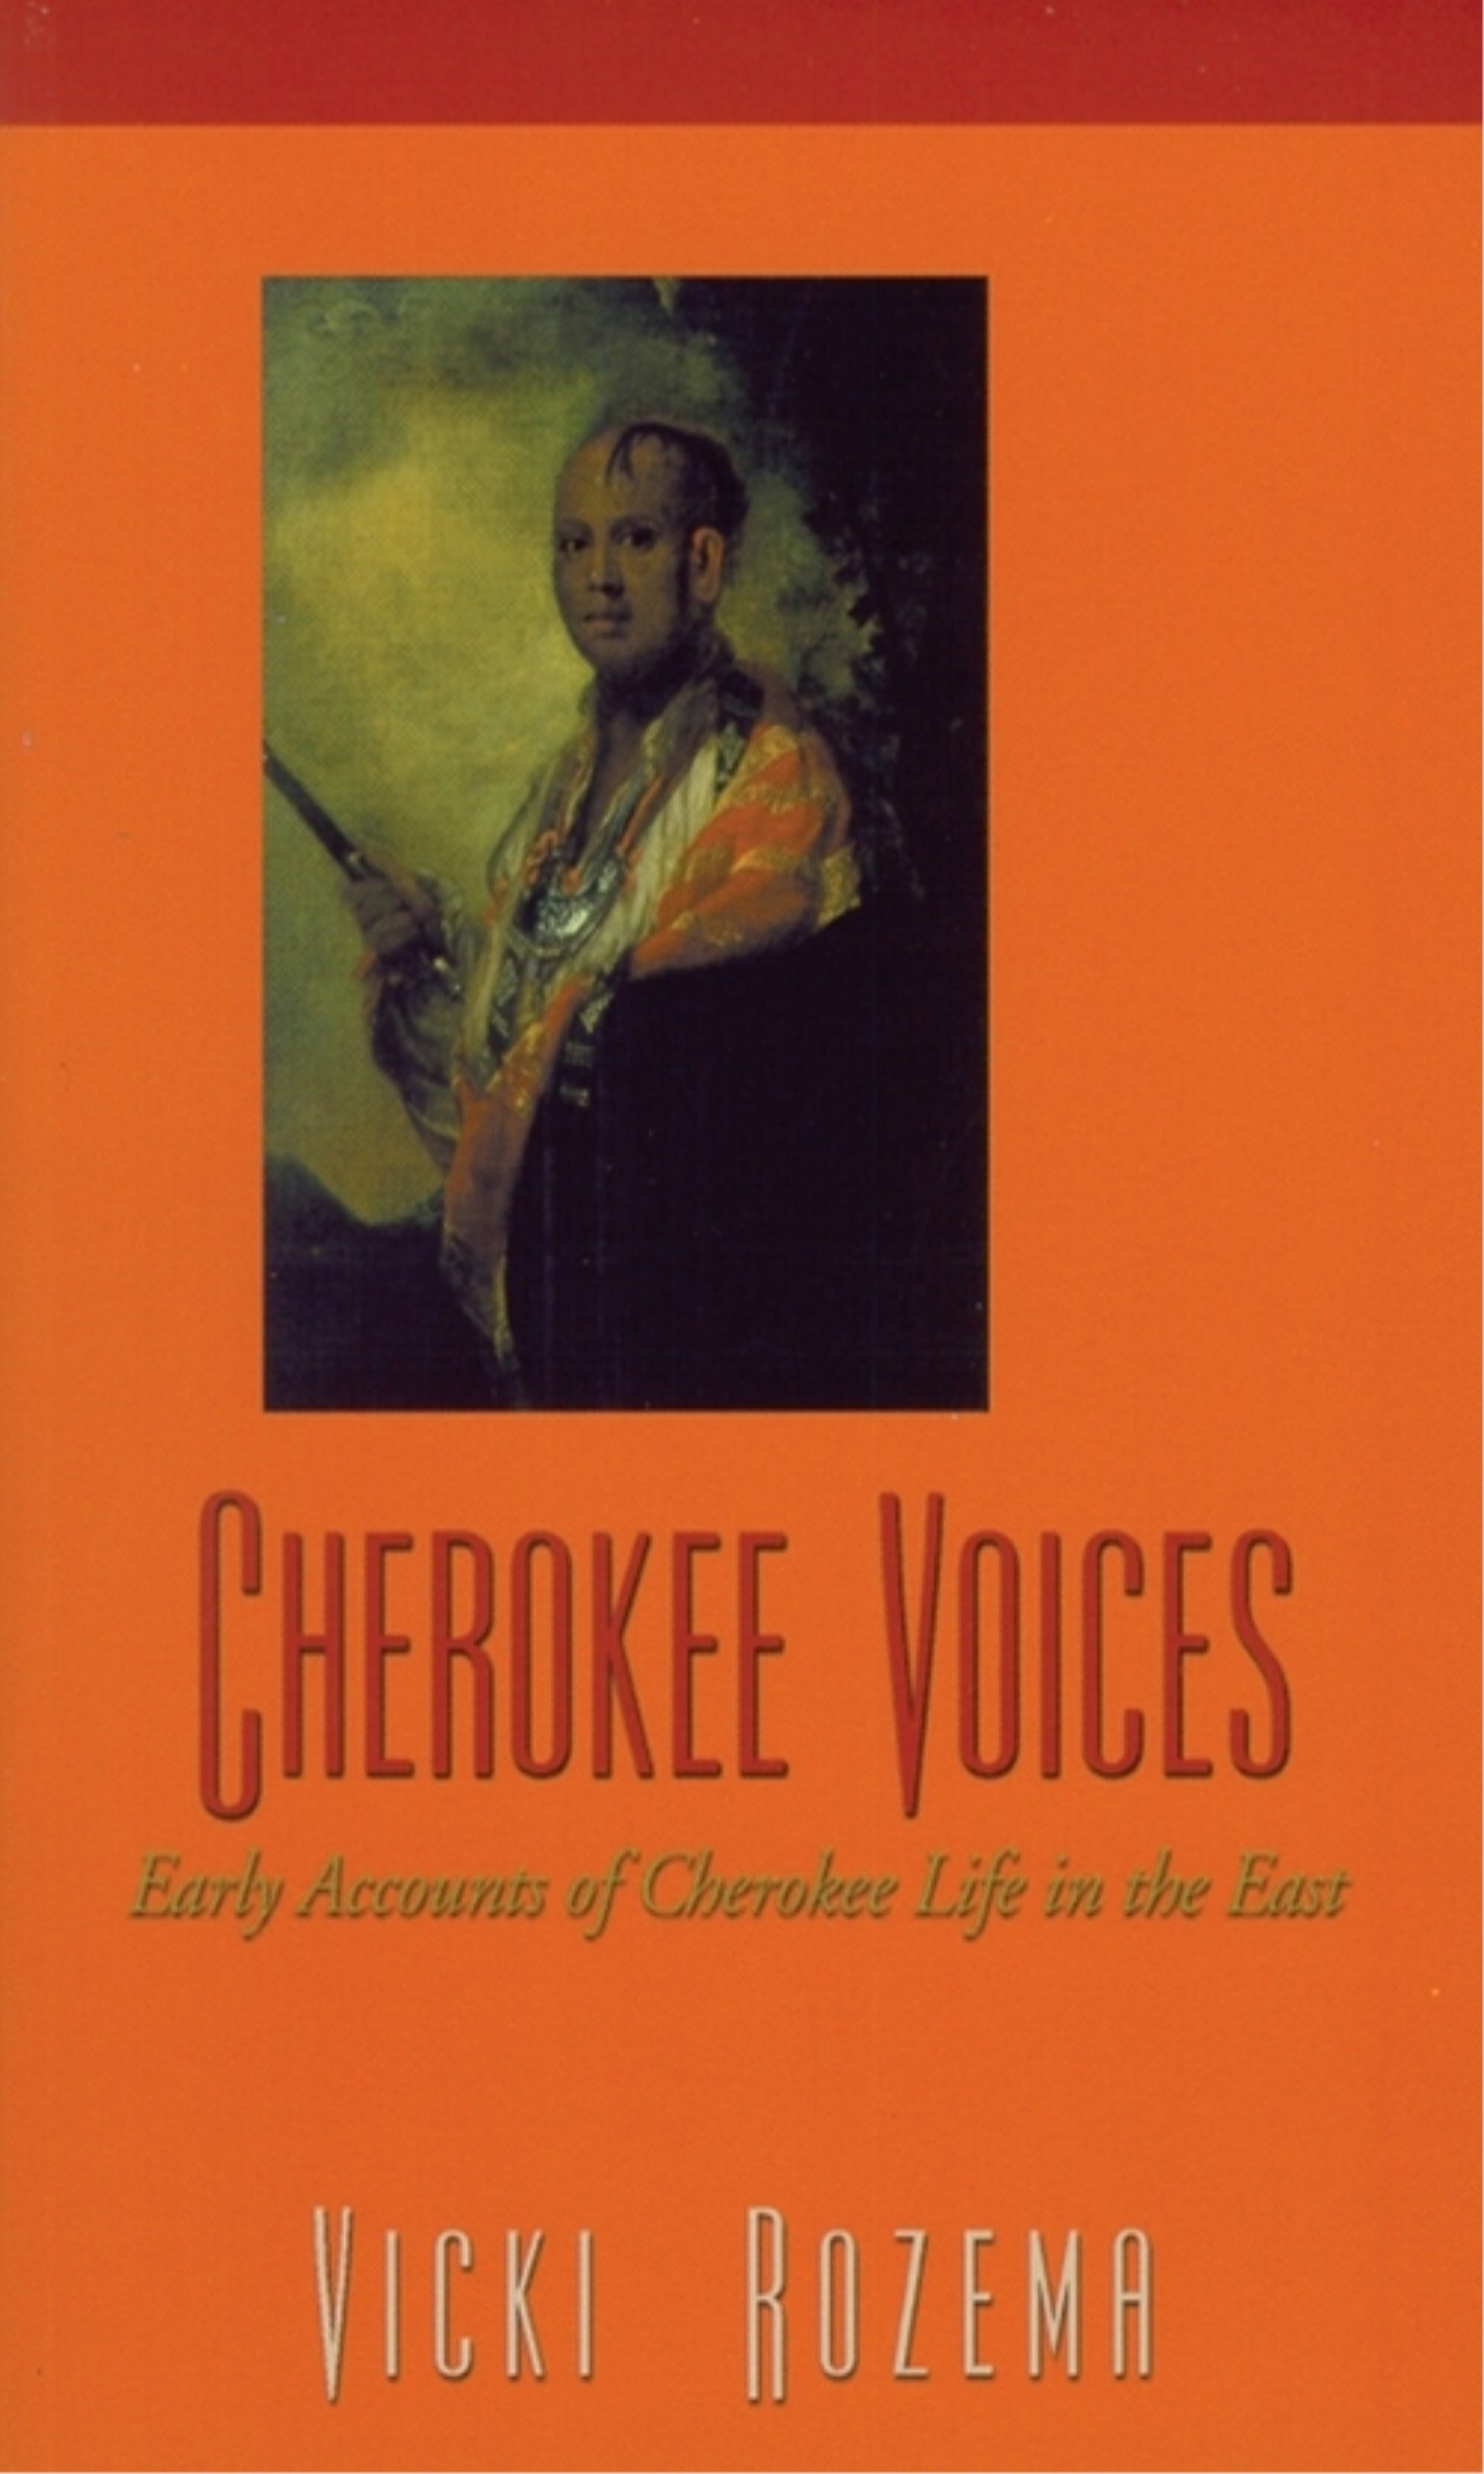 Cherokee Voices: Early Accounts of Cherokee Life in the East (Real Voices, Real History)